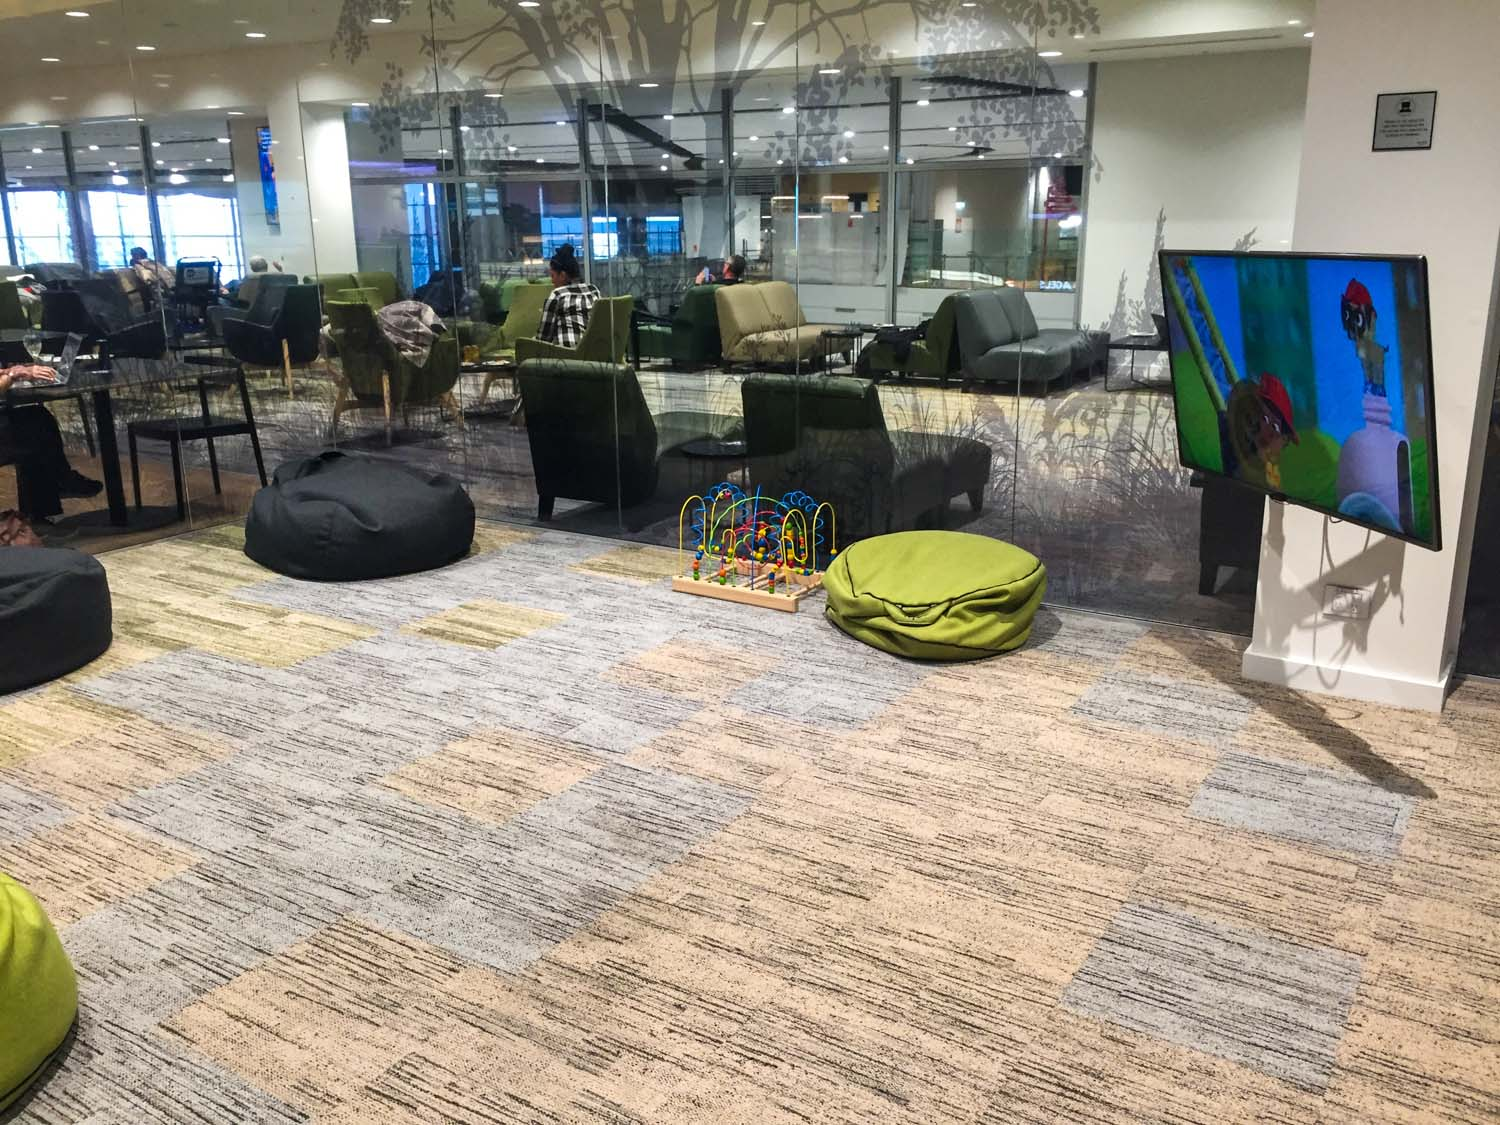 Strata Lounge auckland airport - kids playroom